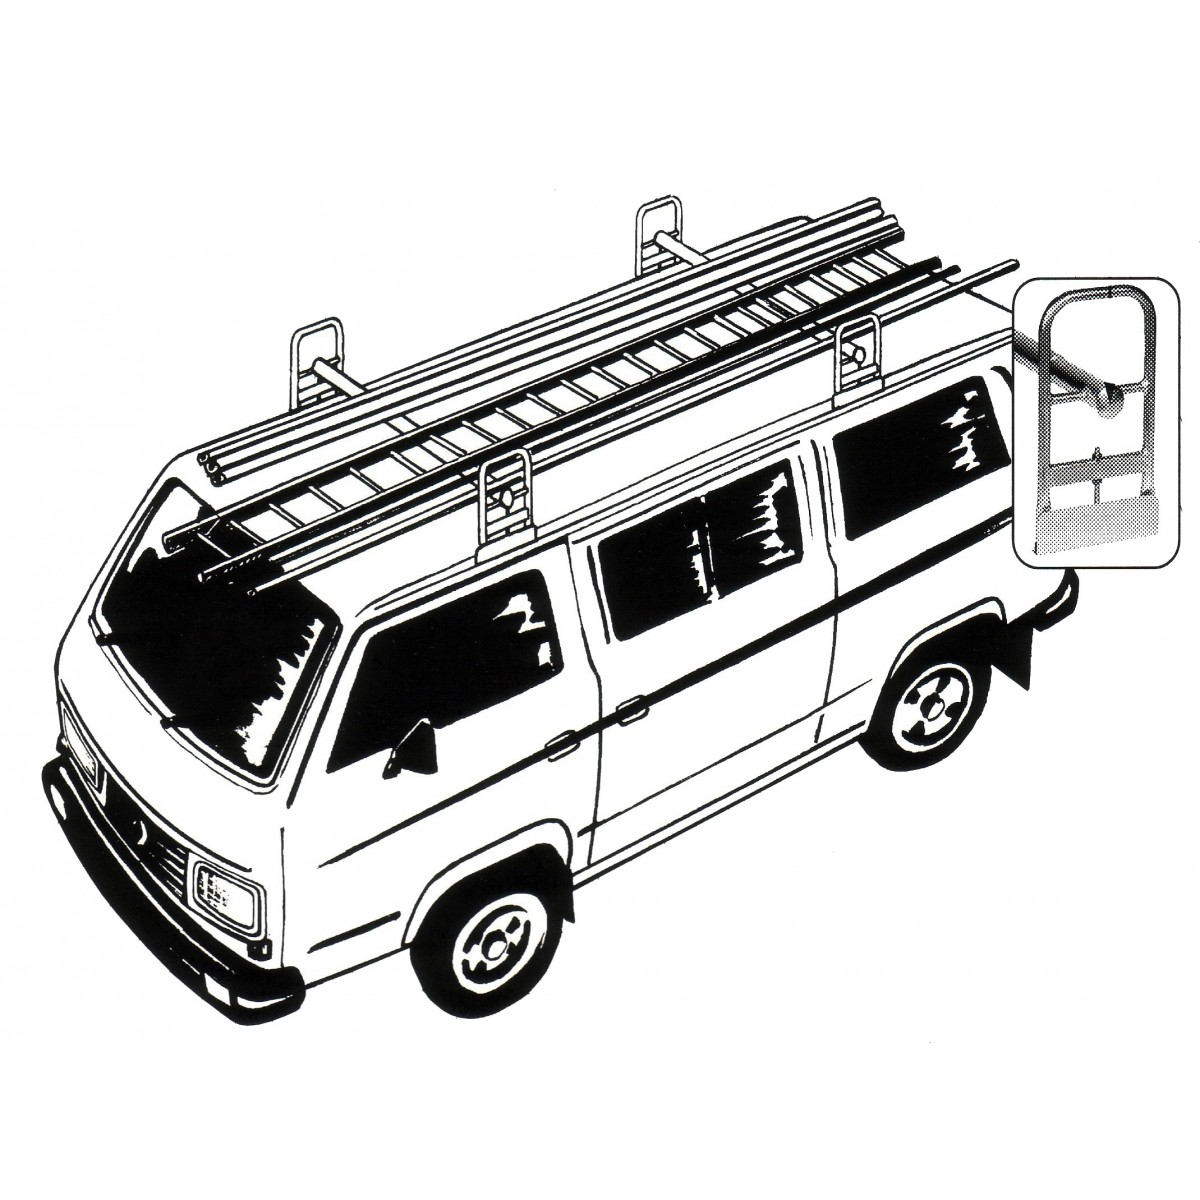 1200x1200 Roof Rack. Van, Ute And 4x4 Roof Racks, Bike Racks, Roof Box